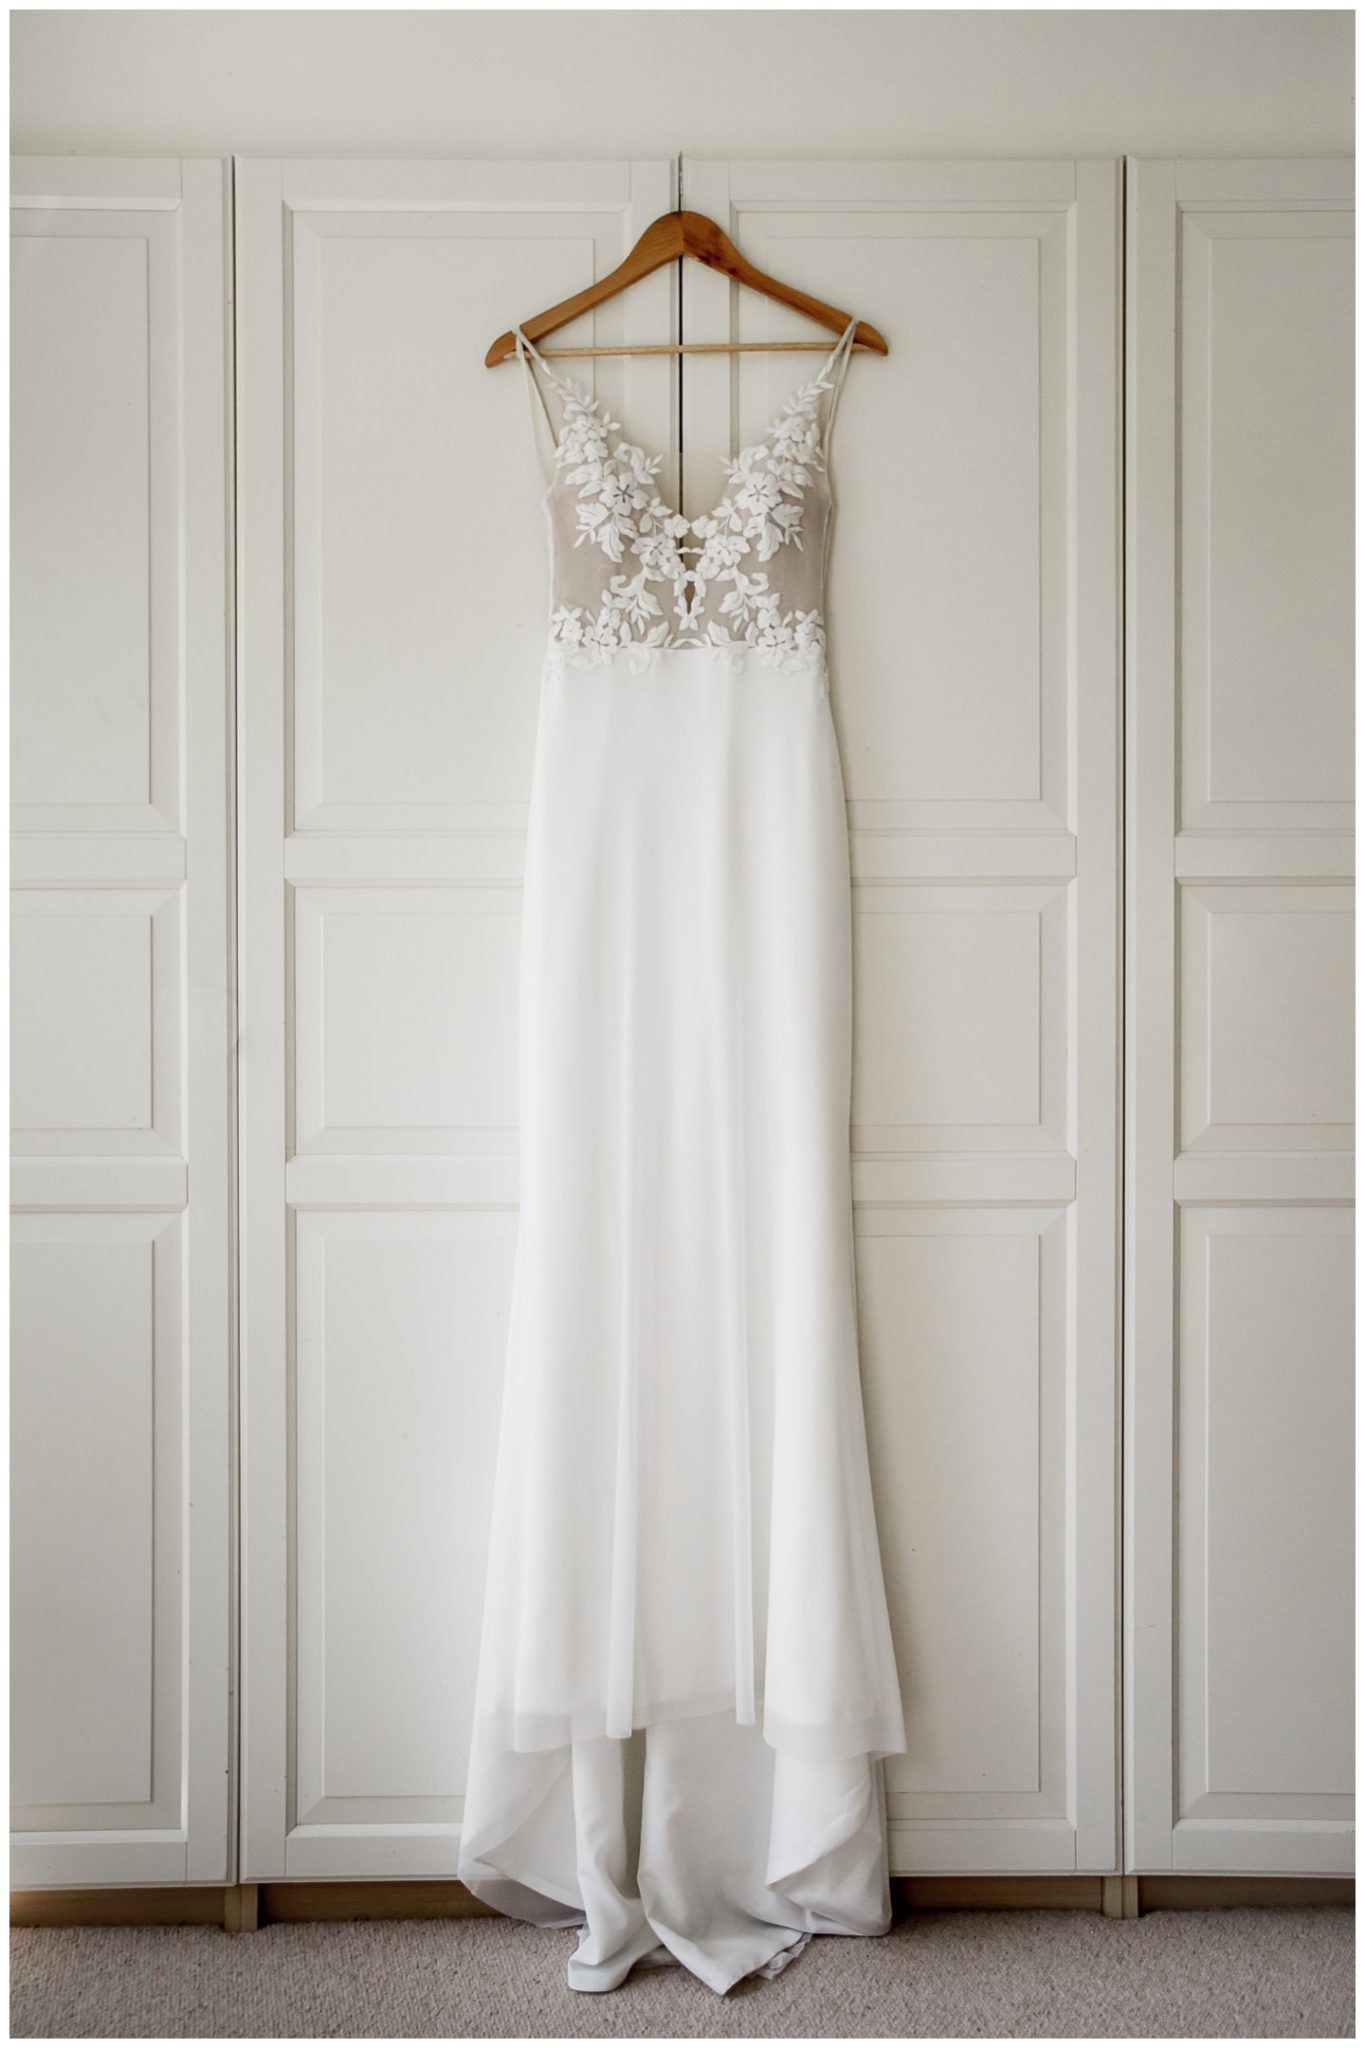 An elegant wedding dress hangs in the bedroom